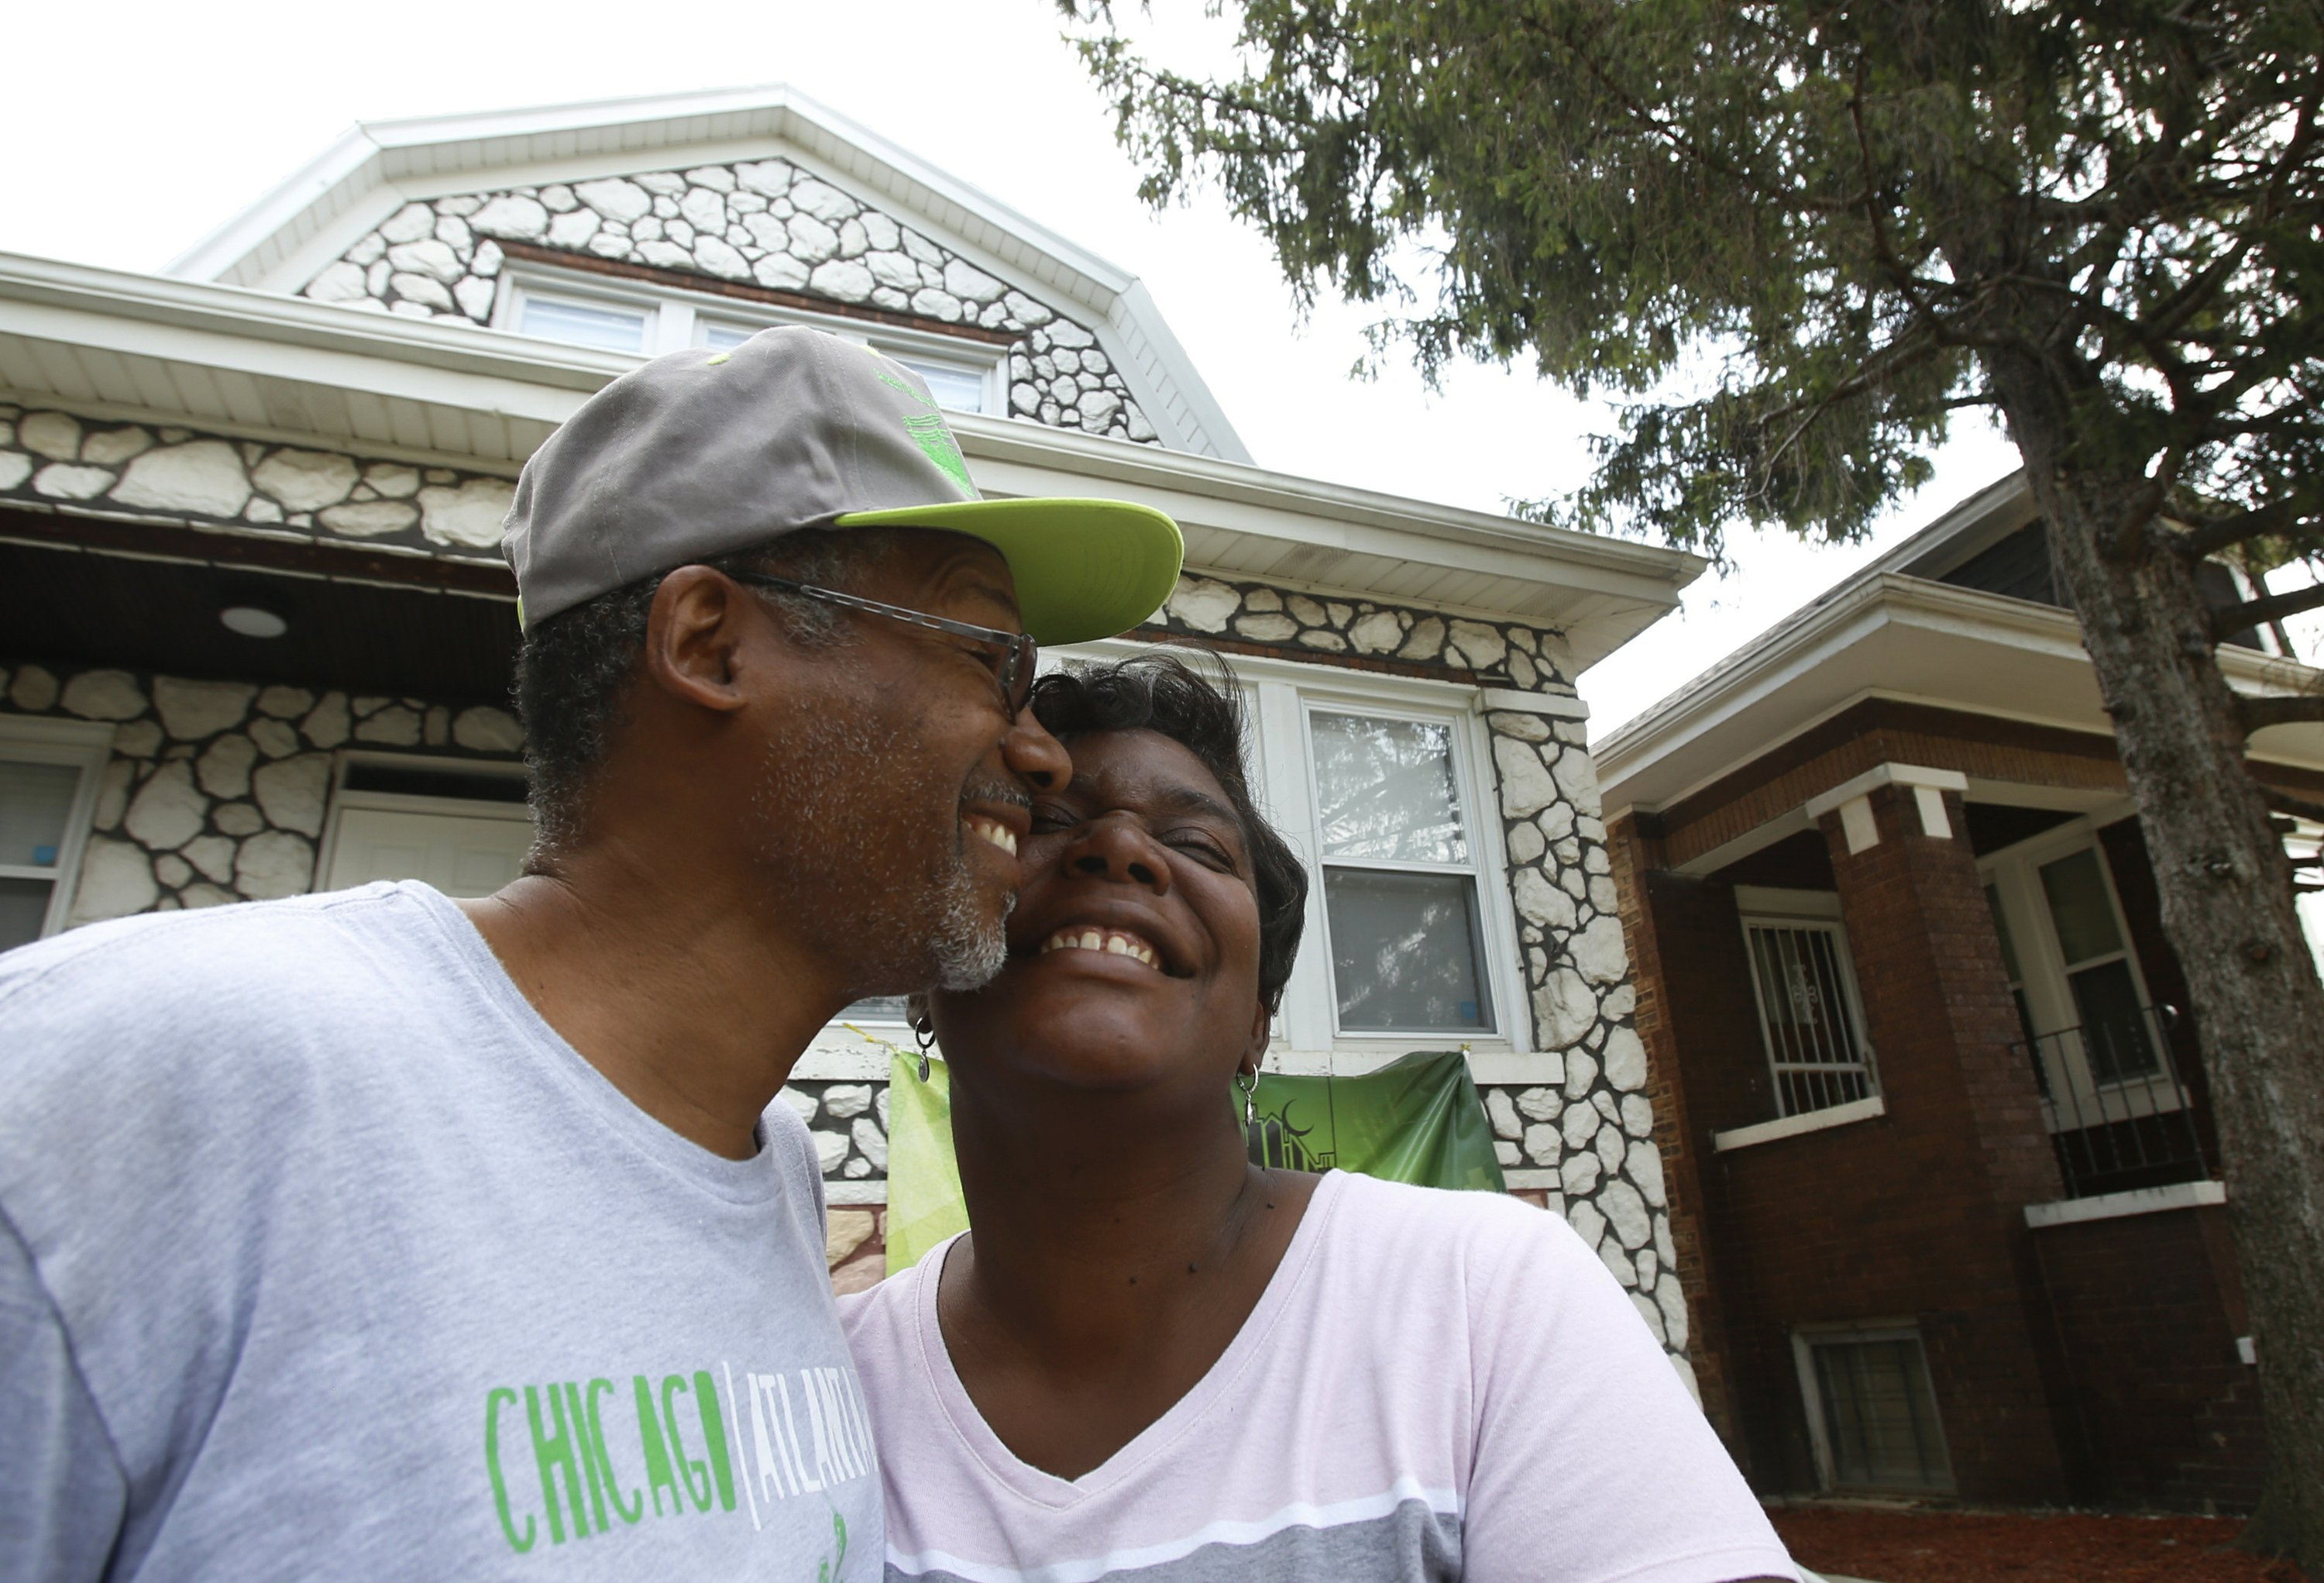 Inspiring tale of a Chicago neighborhood that would not die